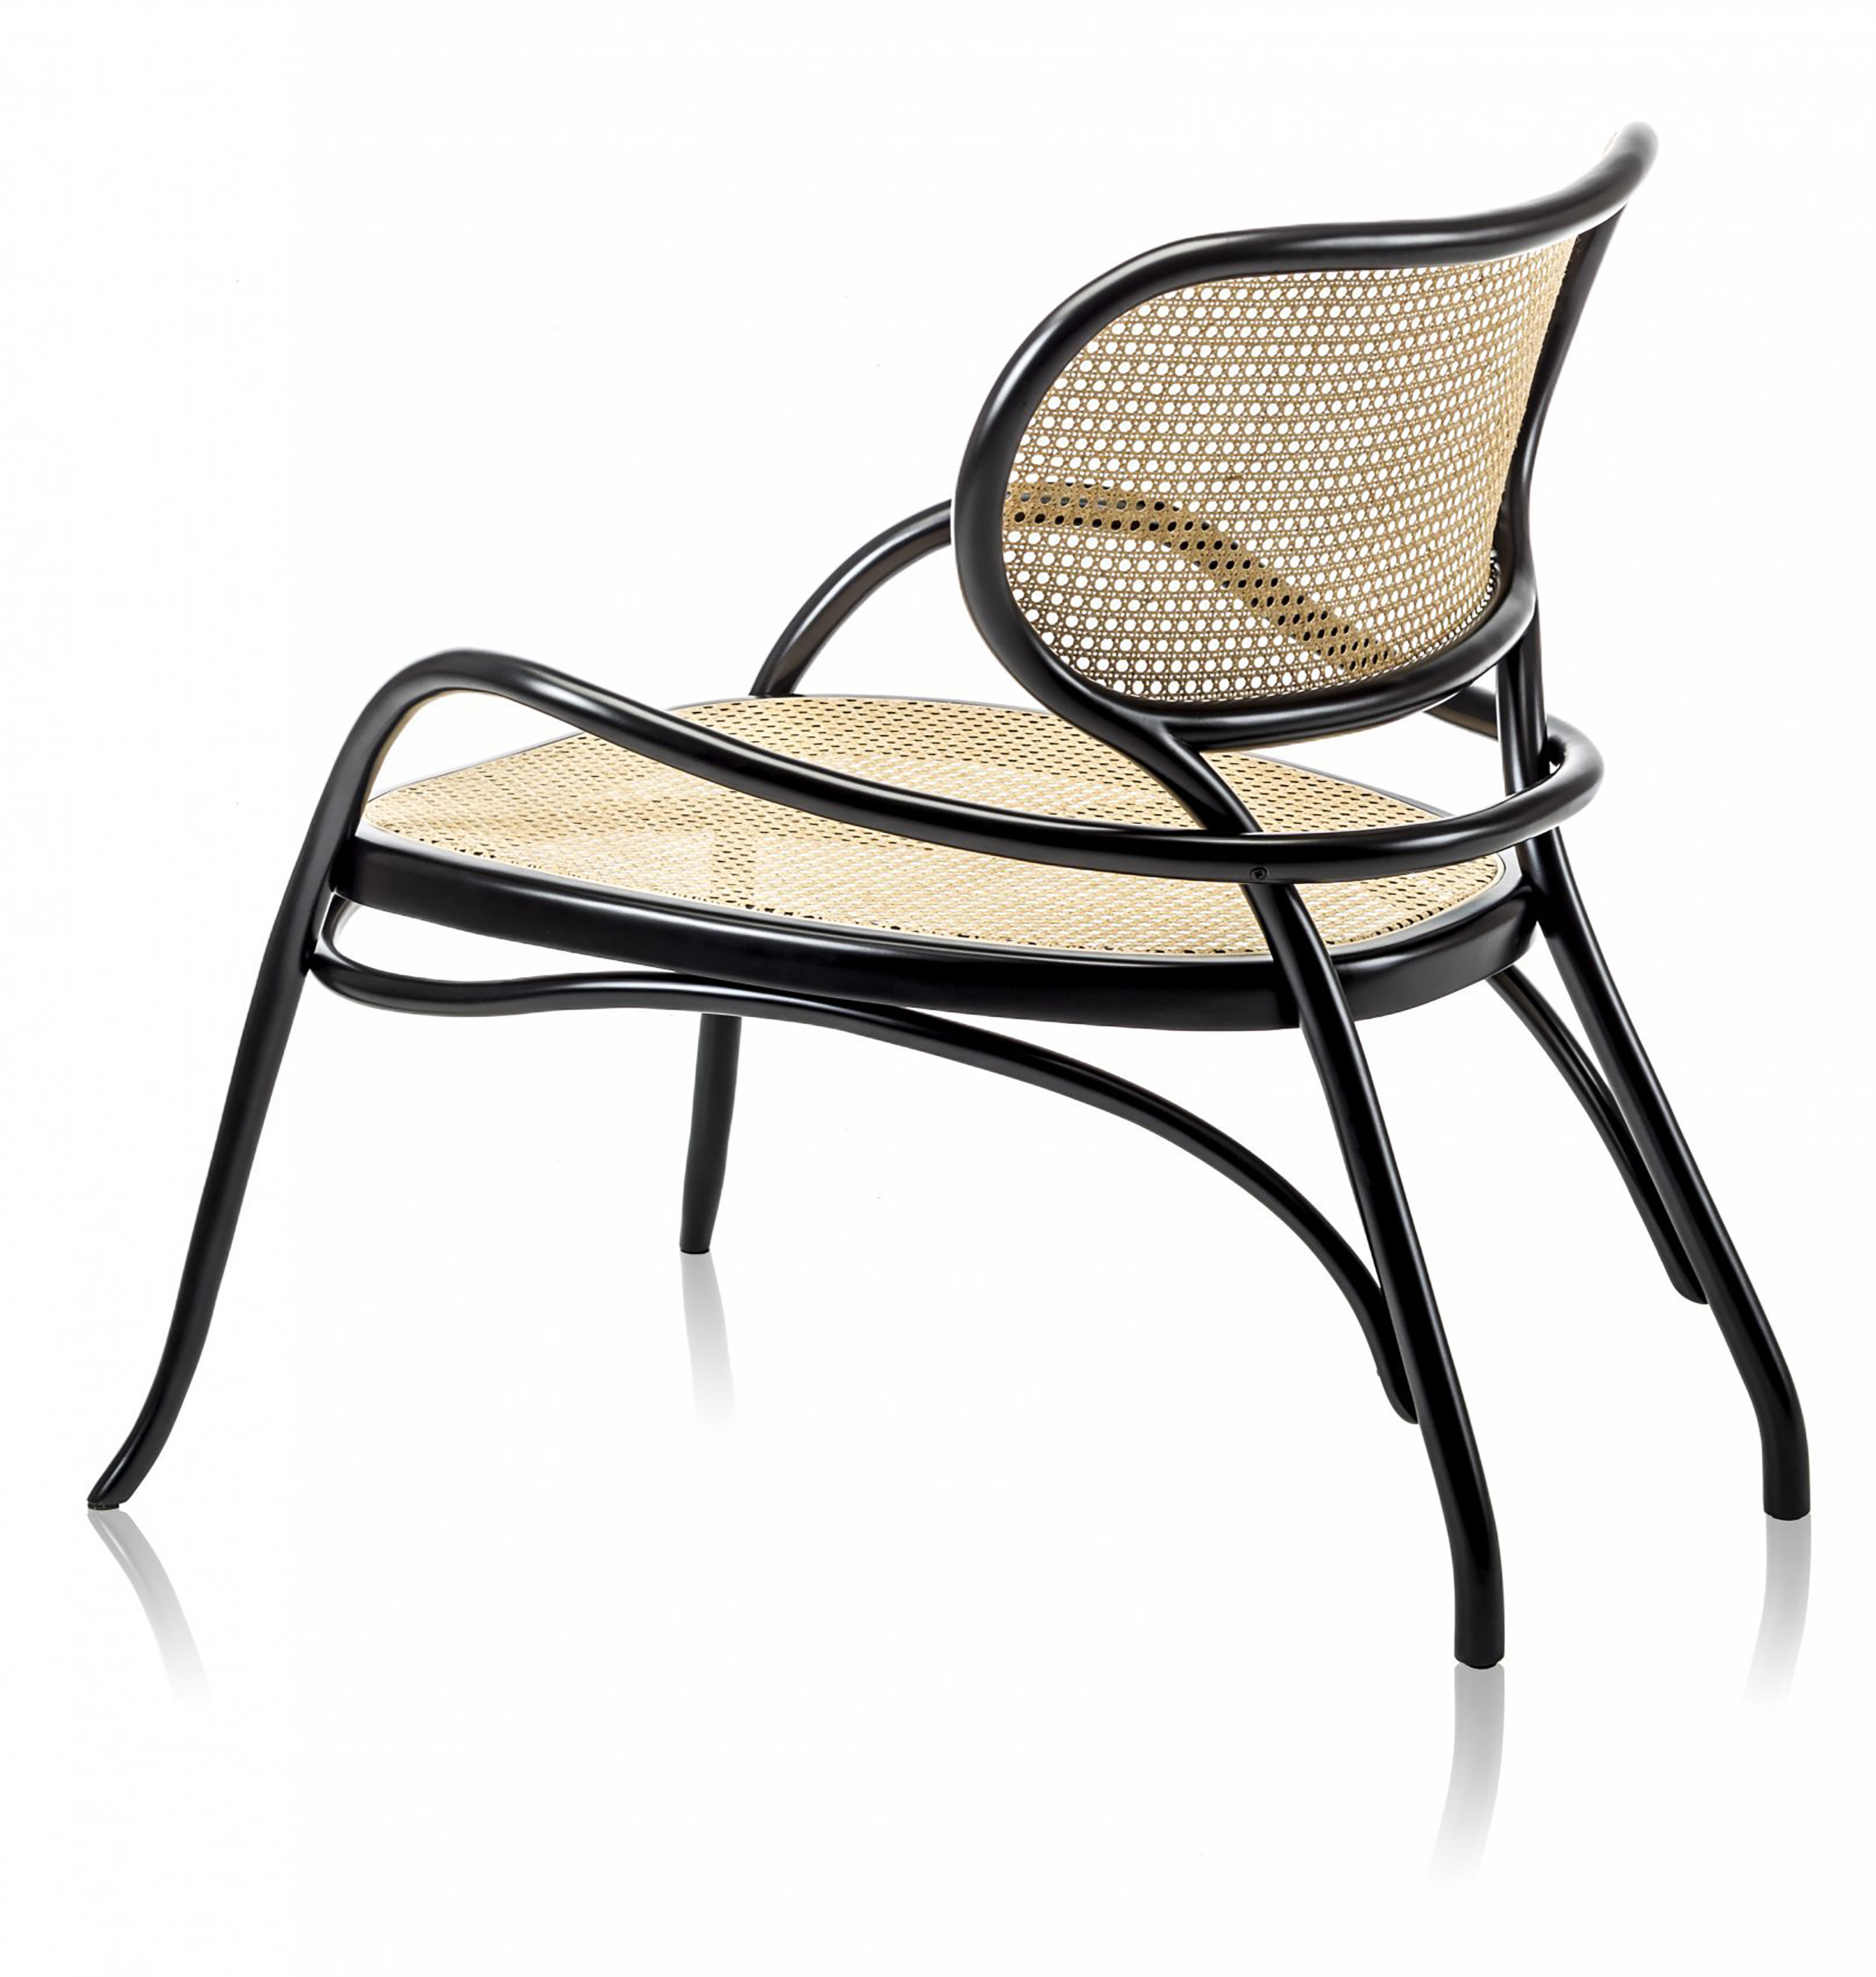 FAUTEUIL BAS MADE IN DESIGN